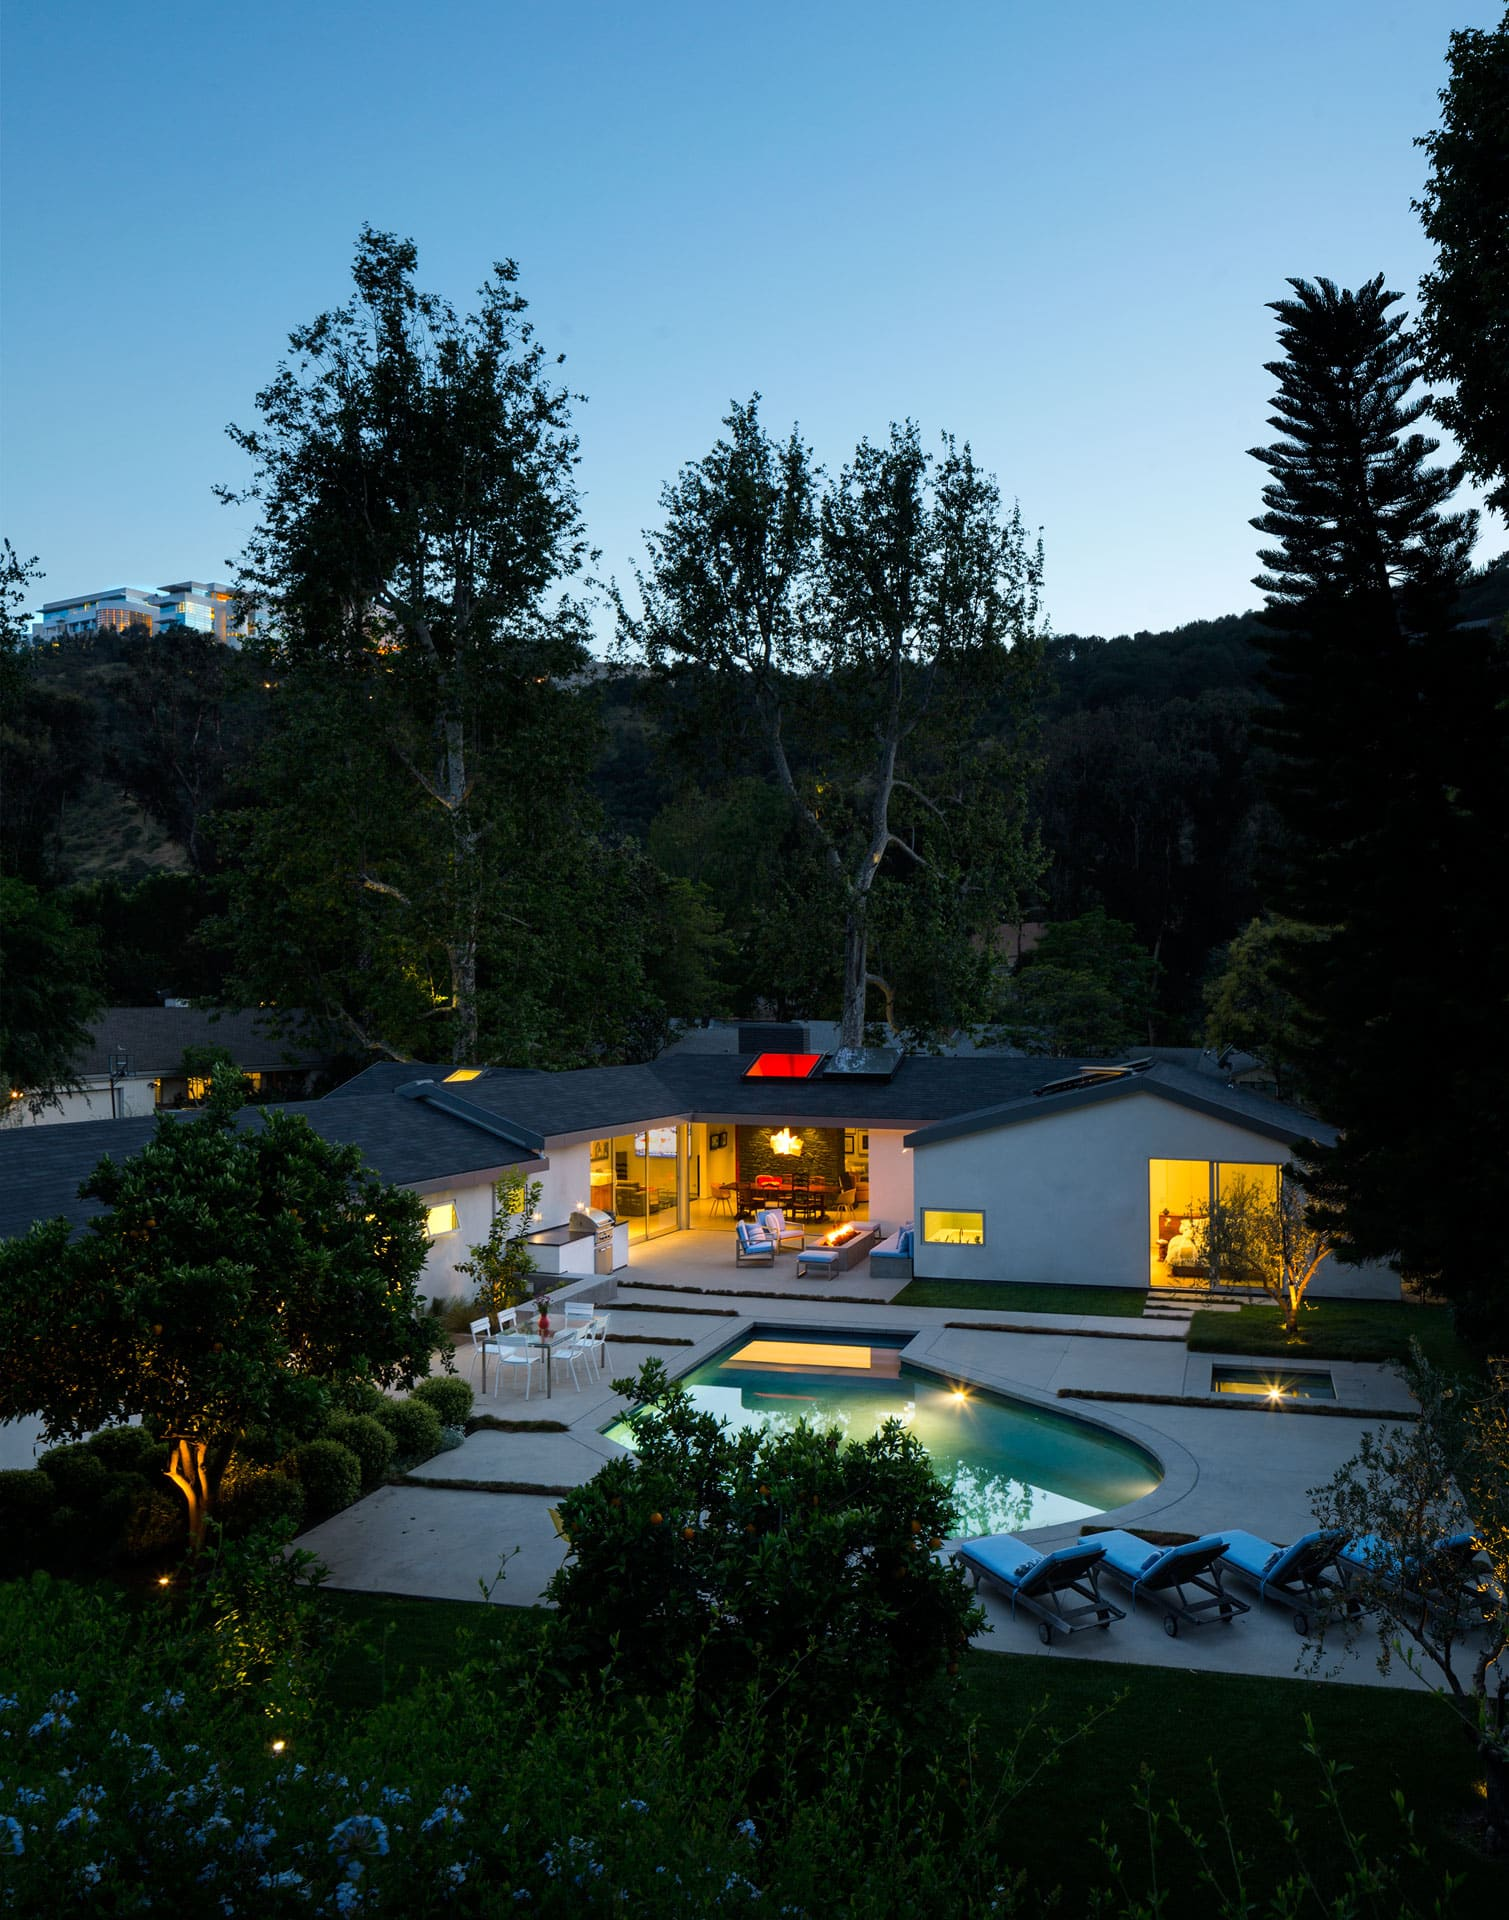 Ranch Redux - Exterior view from above at dusk, with warmly-lit pool and patio. Sycamore trees and the nearby Getty rise up in distance. Photograph by Trevor Tondro.